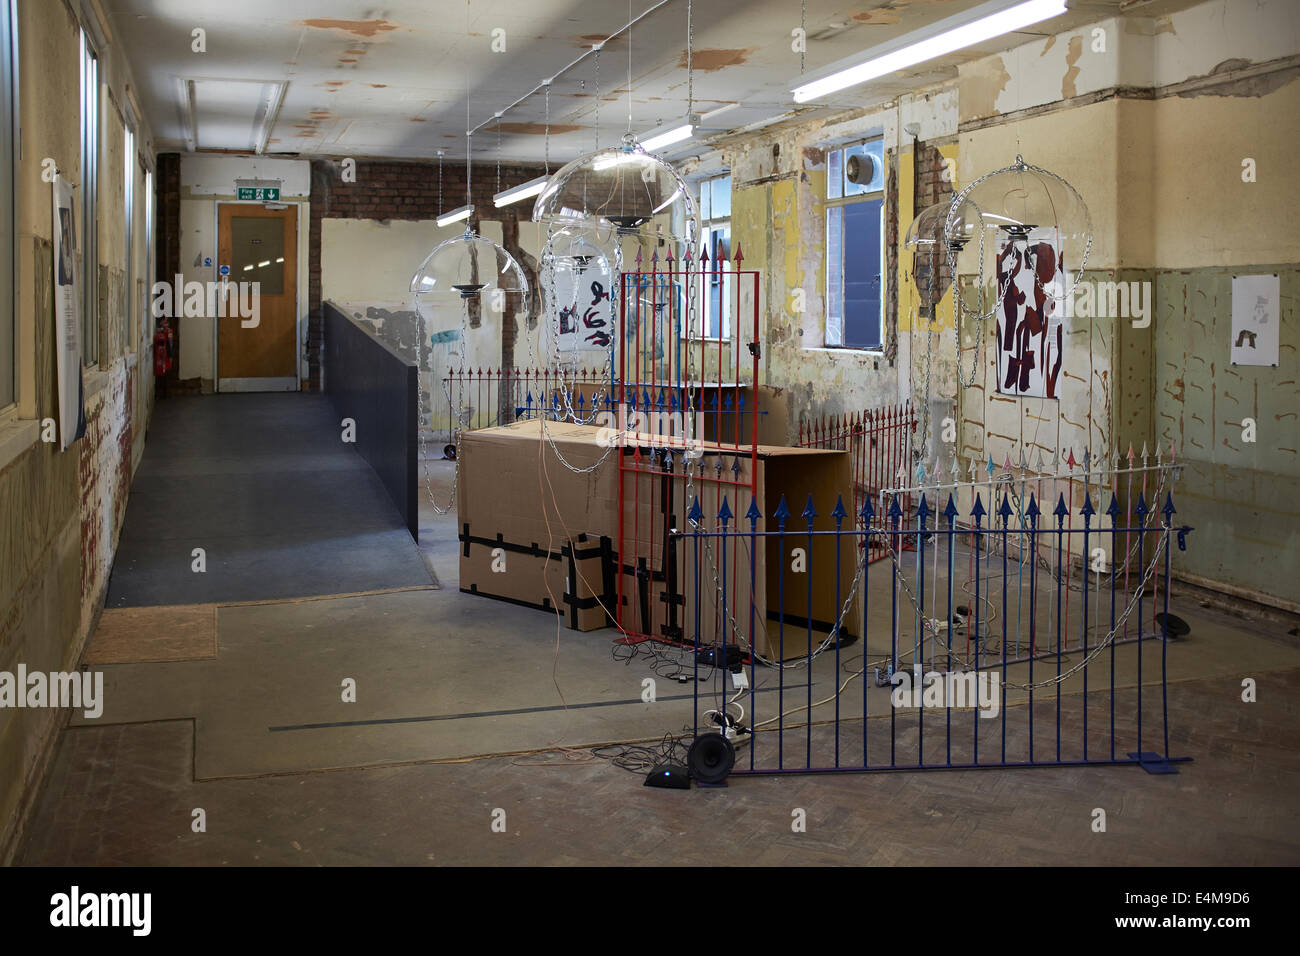 A sculpture gallery at the Liverpool Biennial 2014 in The Old Blind School - Stock Image